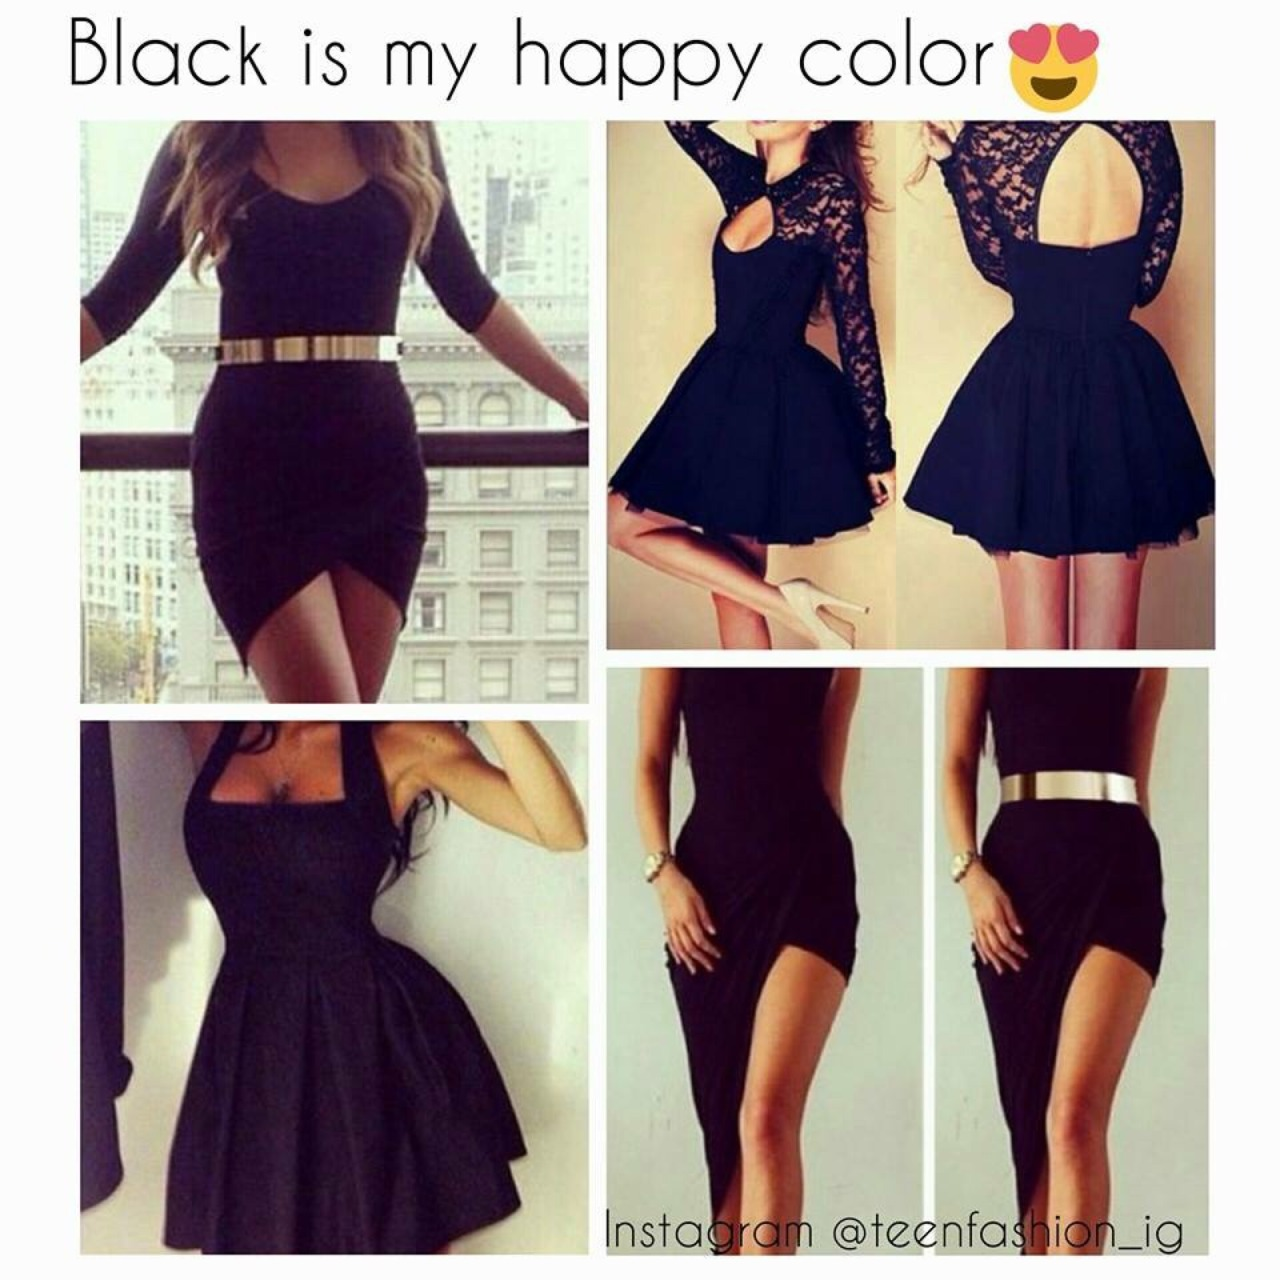 Black black outfit my fave fave colour style shoes model clothes fashion beautiful natural beauty dress skincare hair watches dresses happy happy colour